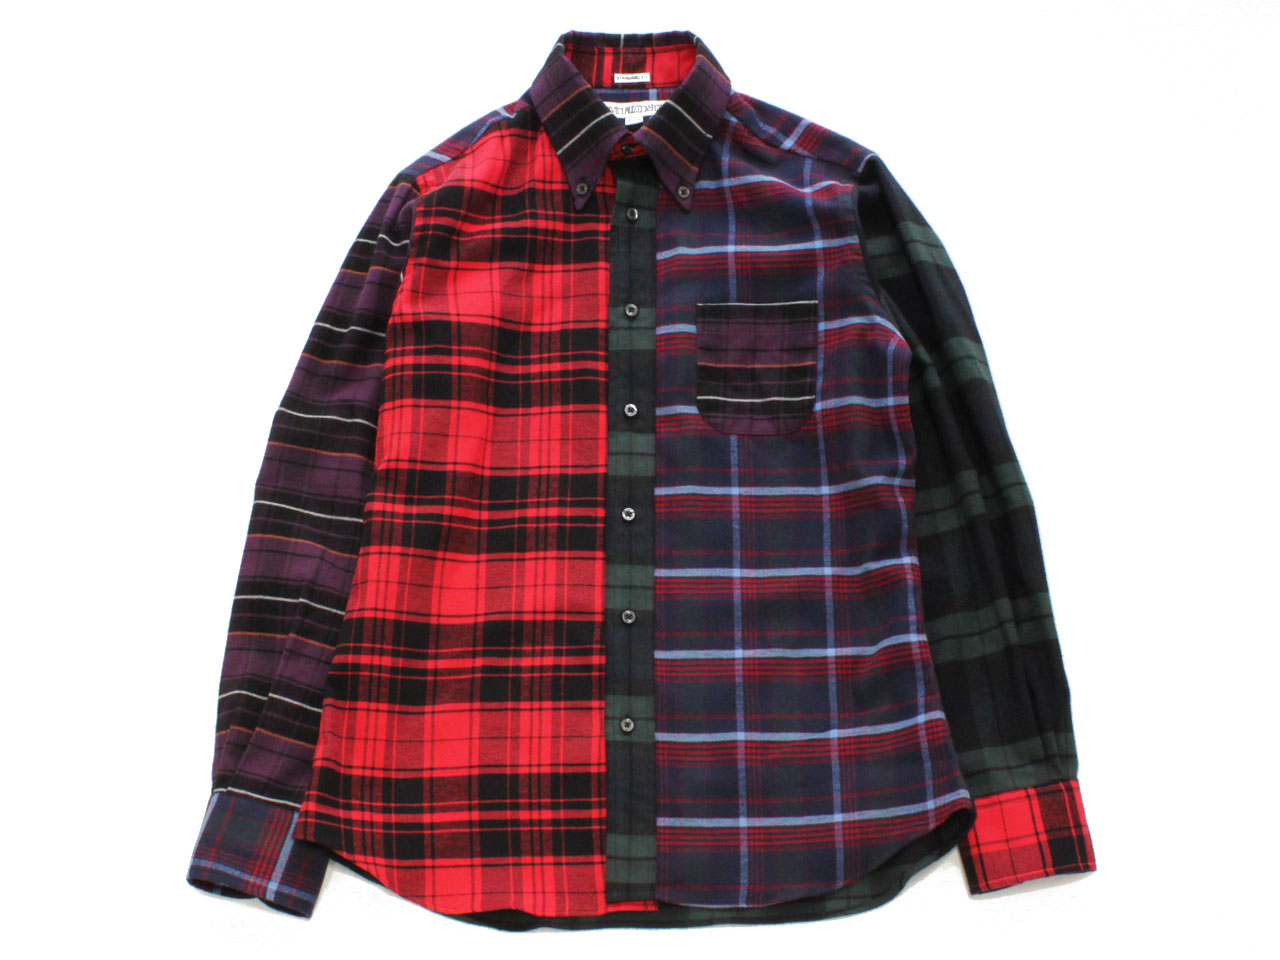 INDIVIDUALIZED SHIRTS【インディビジュアライズドシャツ】ENGNEERED B.D SHIRT *FRANNEL CHECK / STANDARD FIT